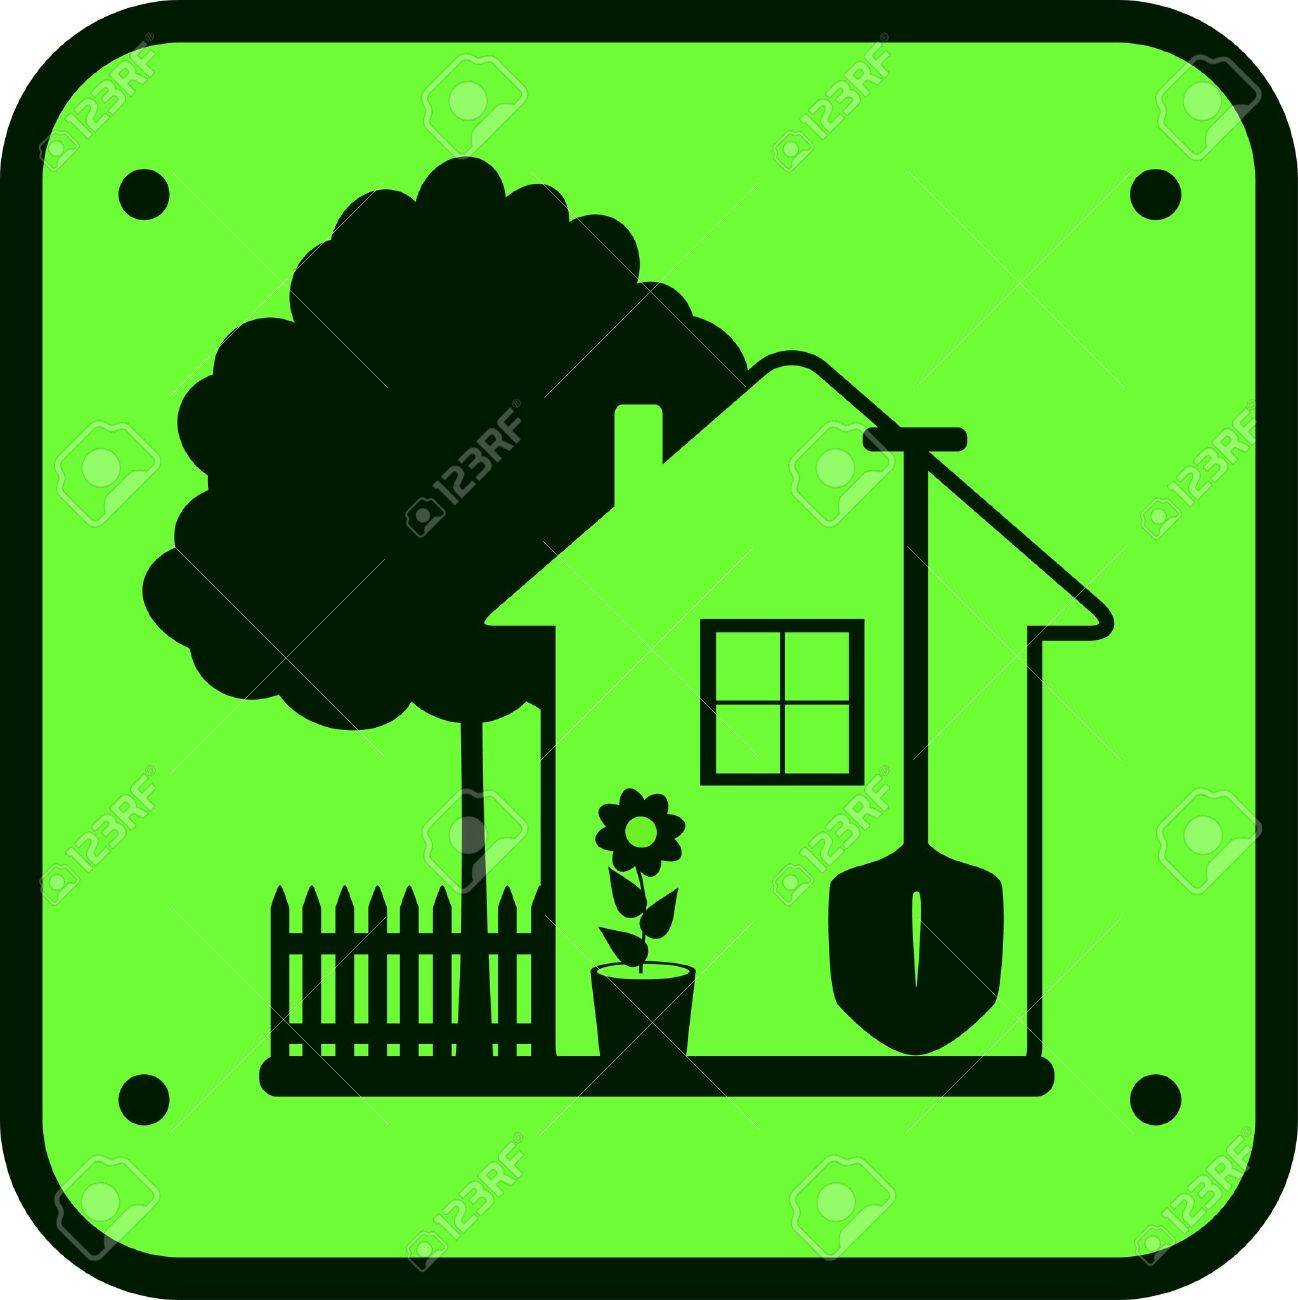 eco green sign garden work with tree, house, flower and tools Stock Vector - 12340515